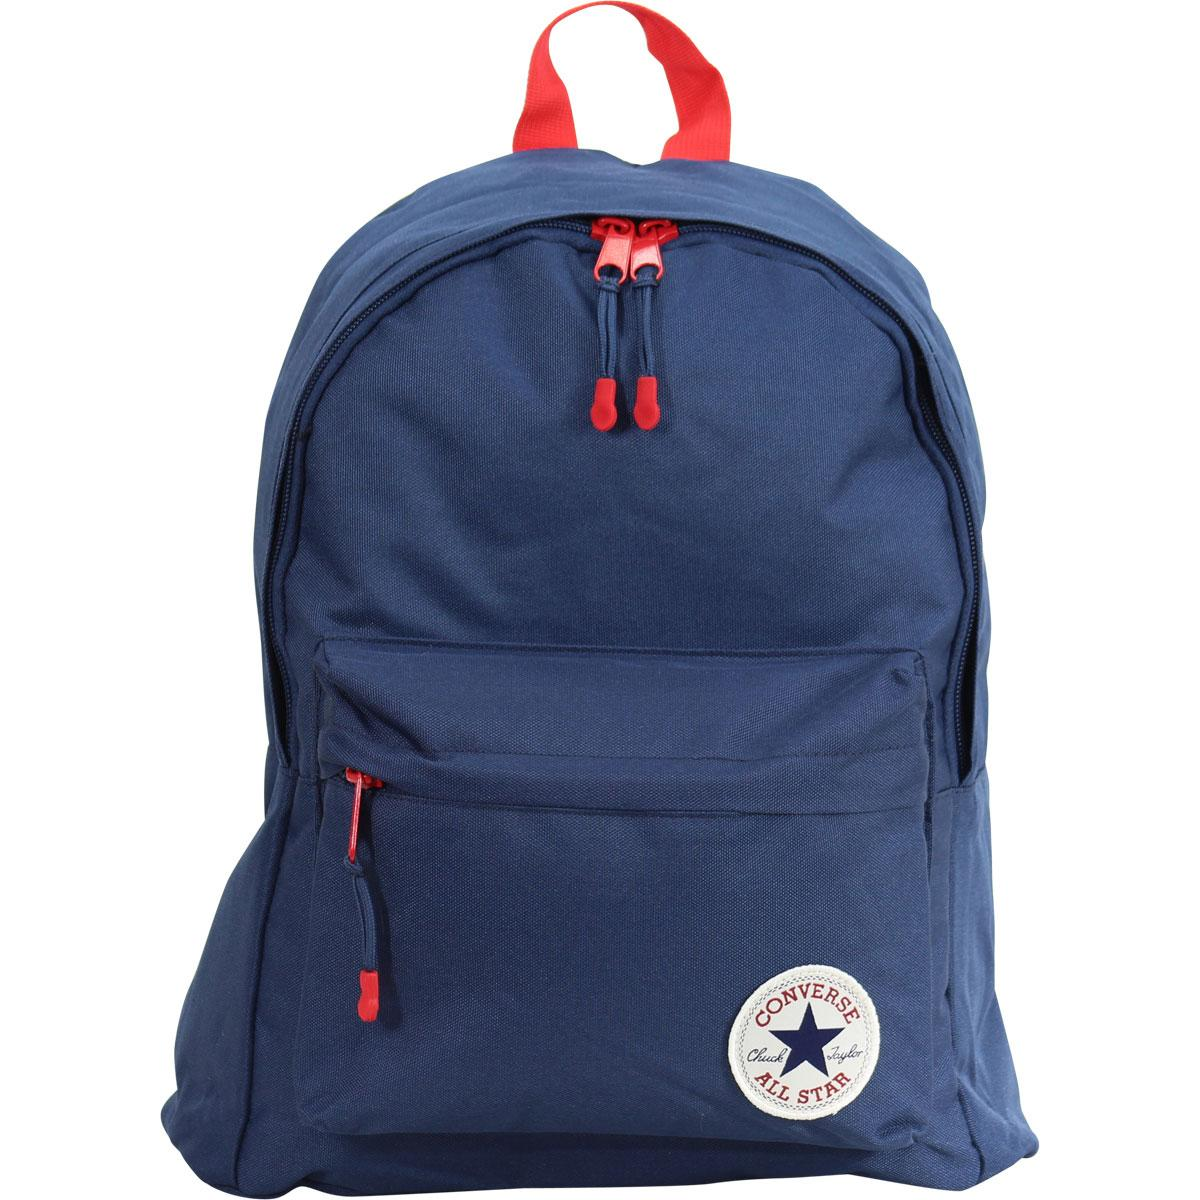 46f59f2084 Converse Little Big Boy s All-Star Rucksack Backpack by Converse